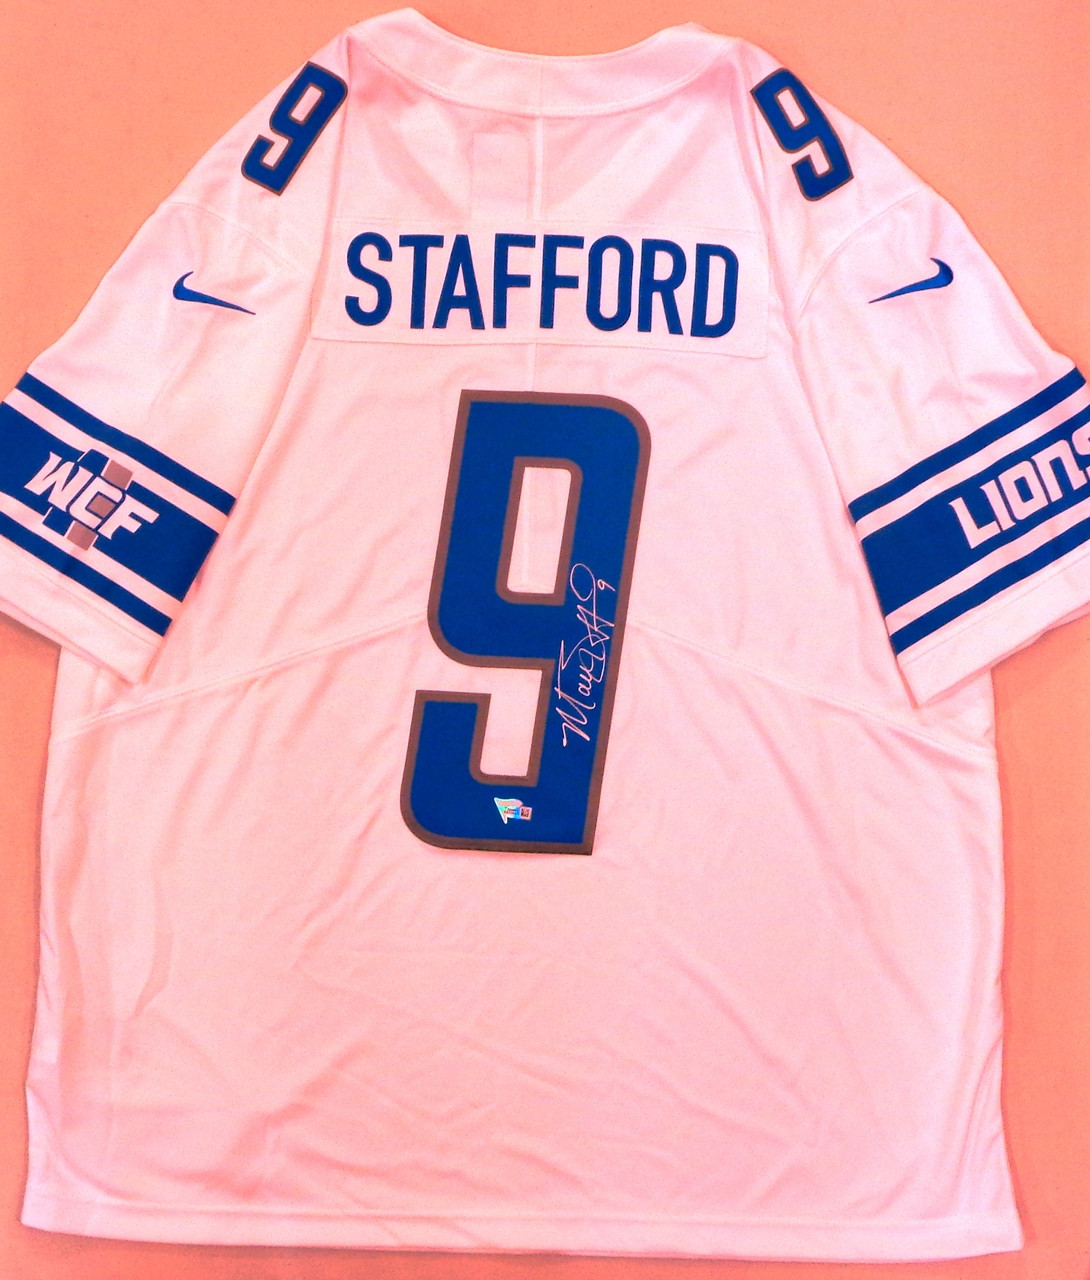 Matthew Stafford Autographed Detroit Lions Jersey - White Nike Limited